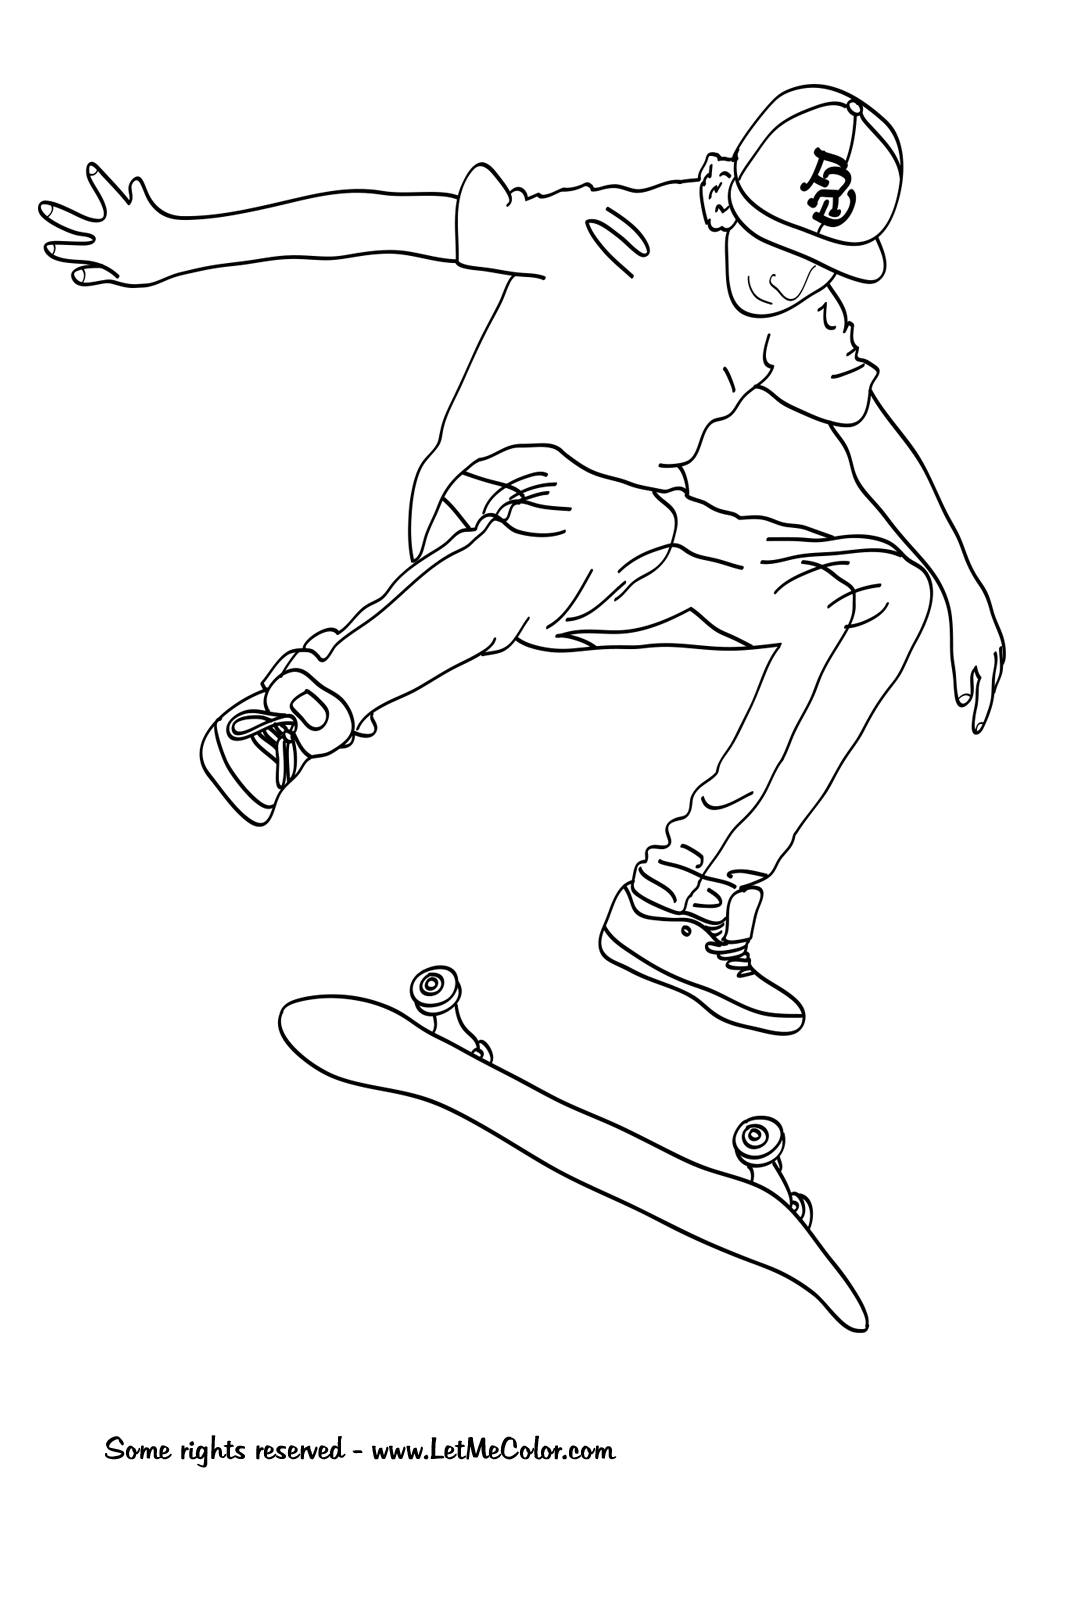 Coloring games to play - Coloring Games Free Download Skateboard Play Using The Cap Coloring Pages For Kids Printable Skating